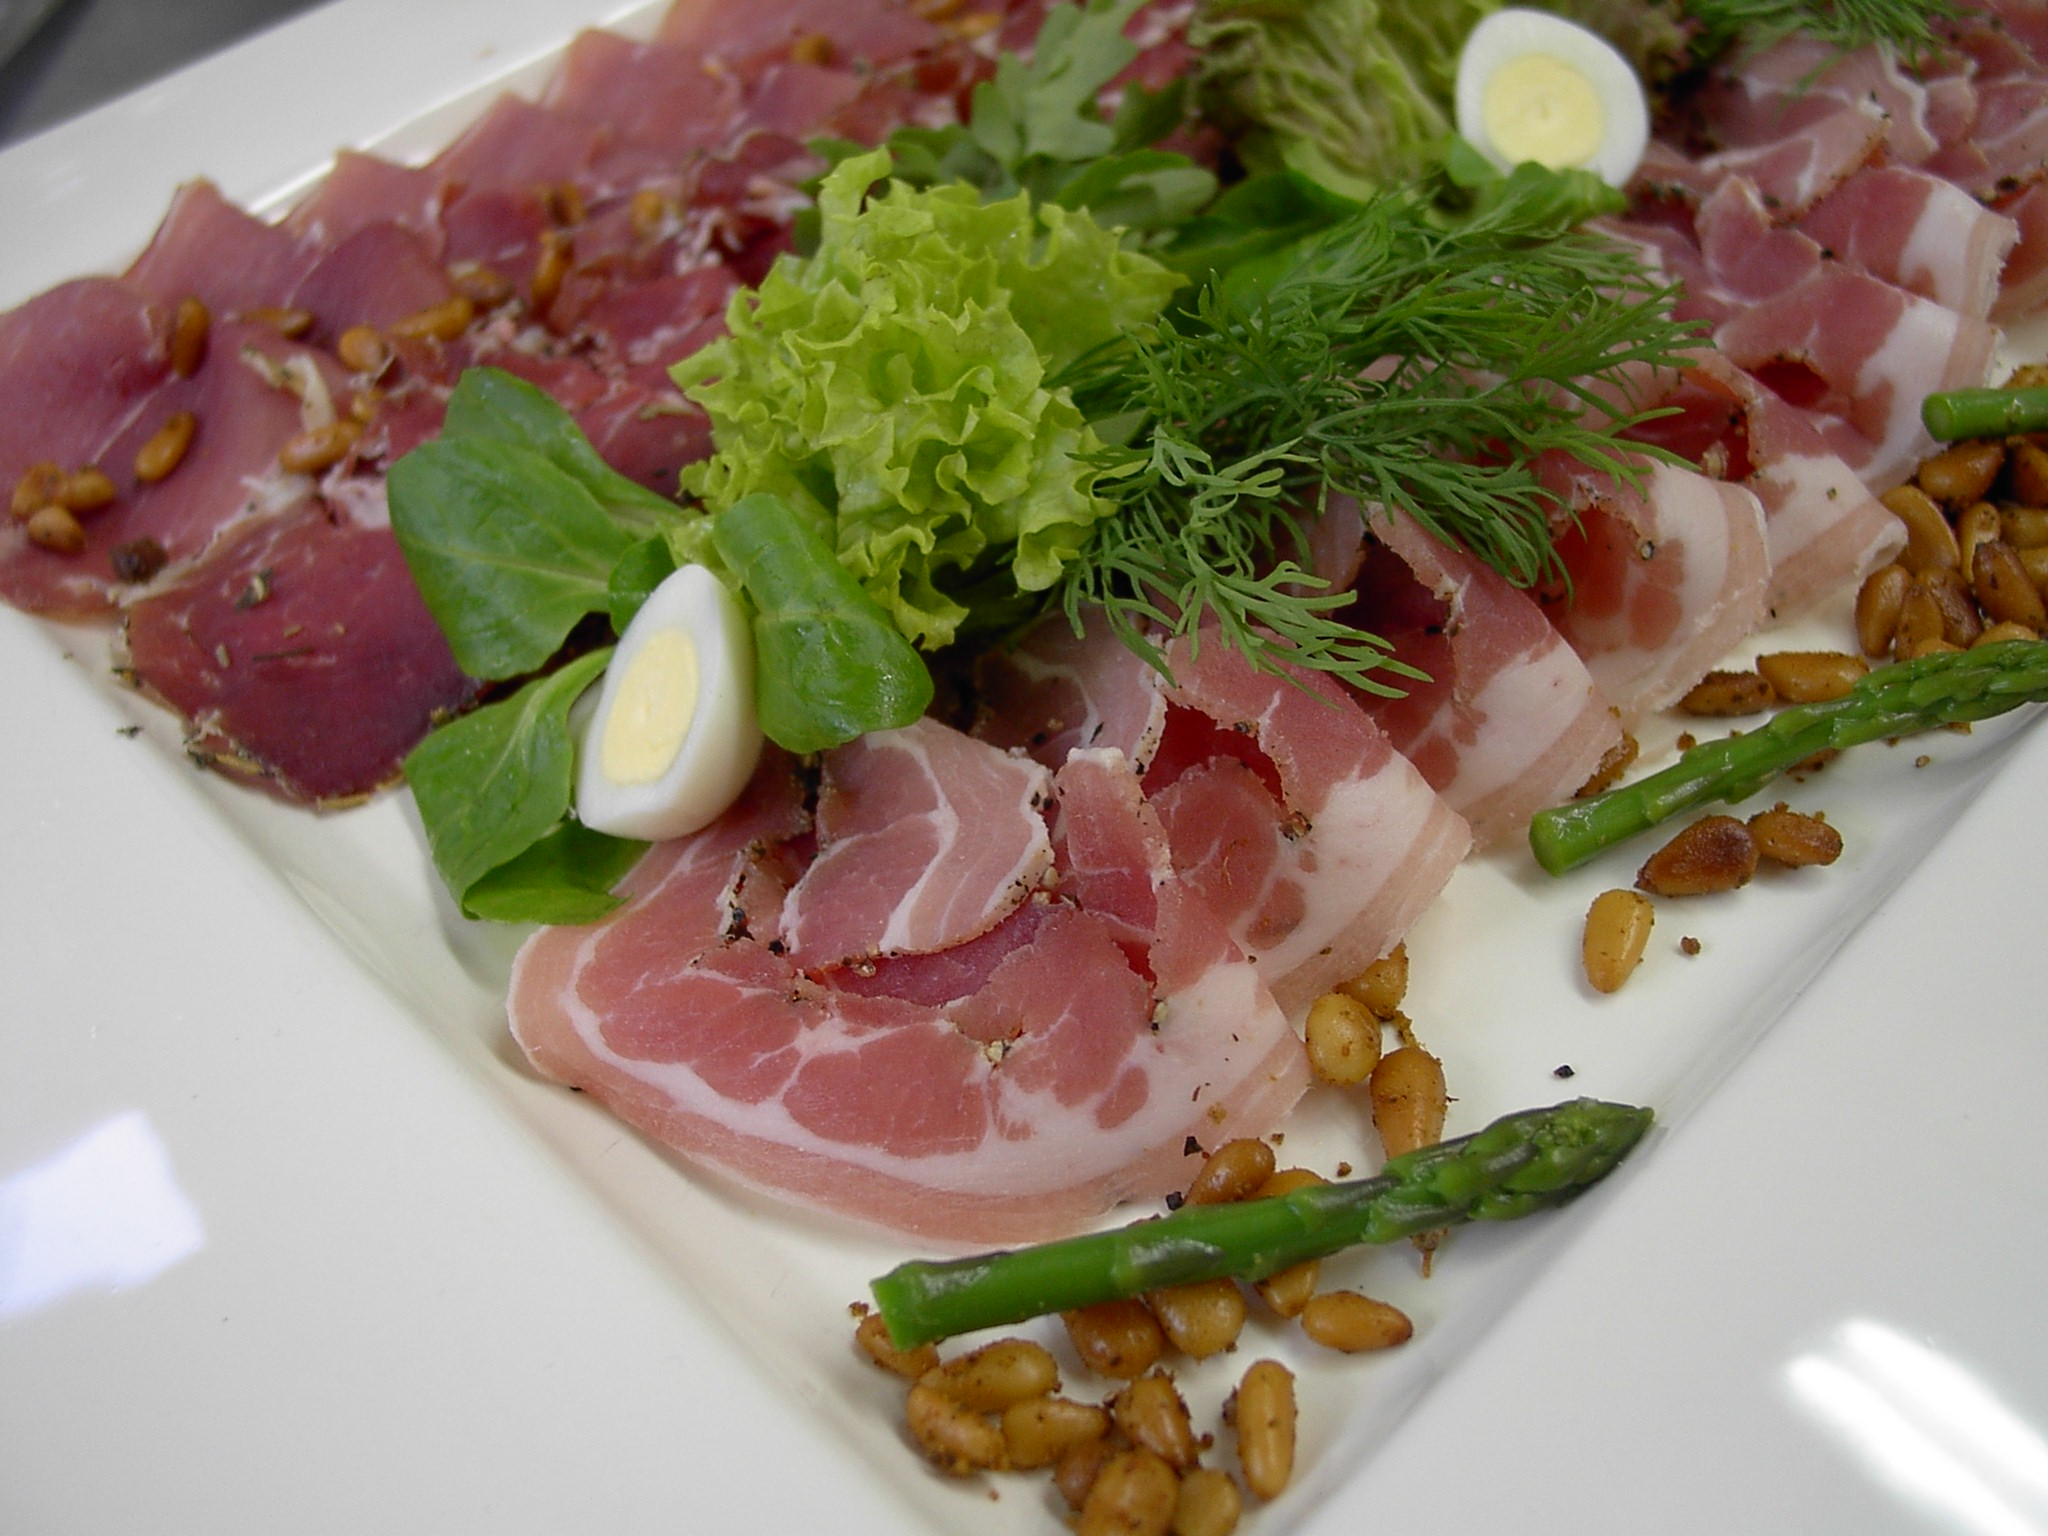 catering Amsterdam, catering Rotterdam, catering aan huis, www.catering-buffet.nl, walking diner, catering, decoratie, buffet, diner